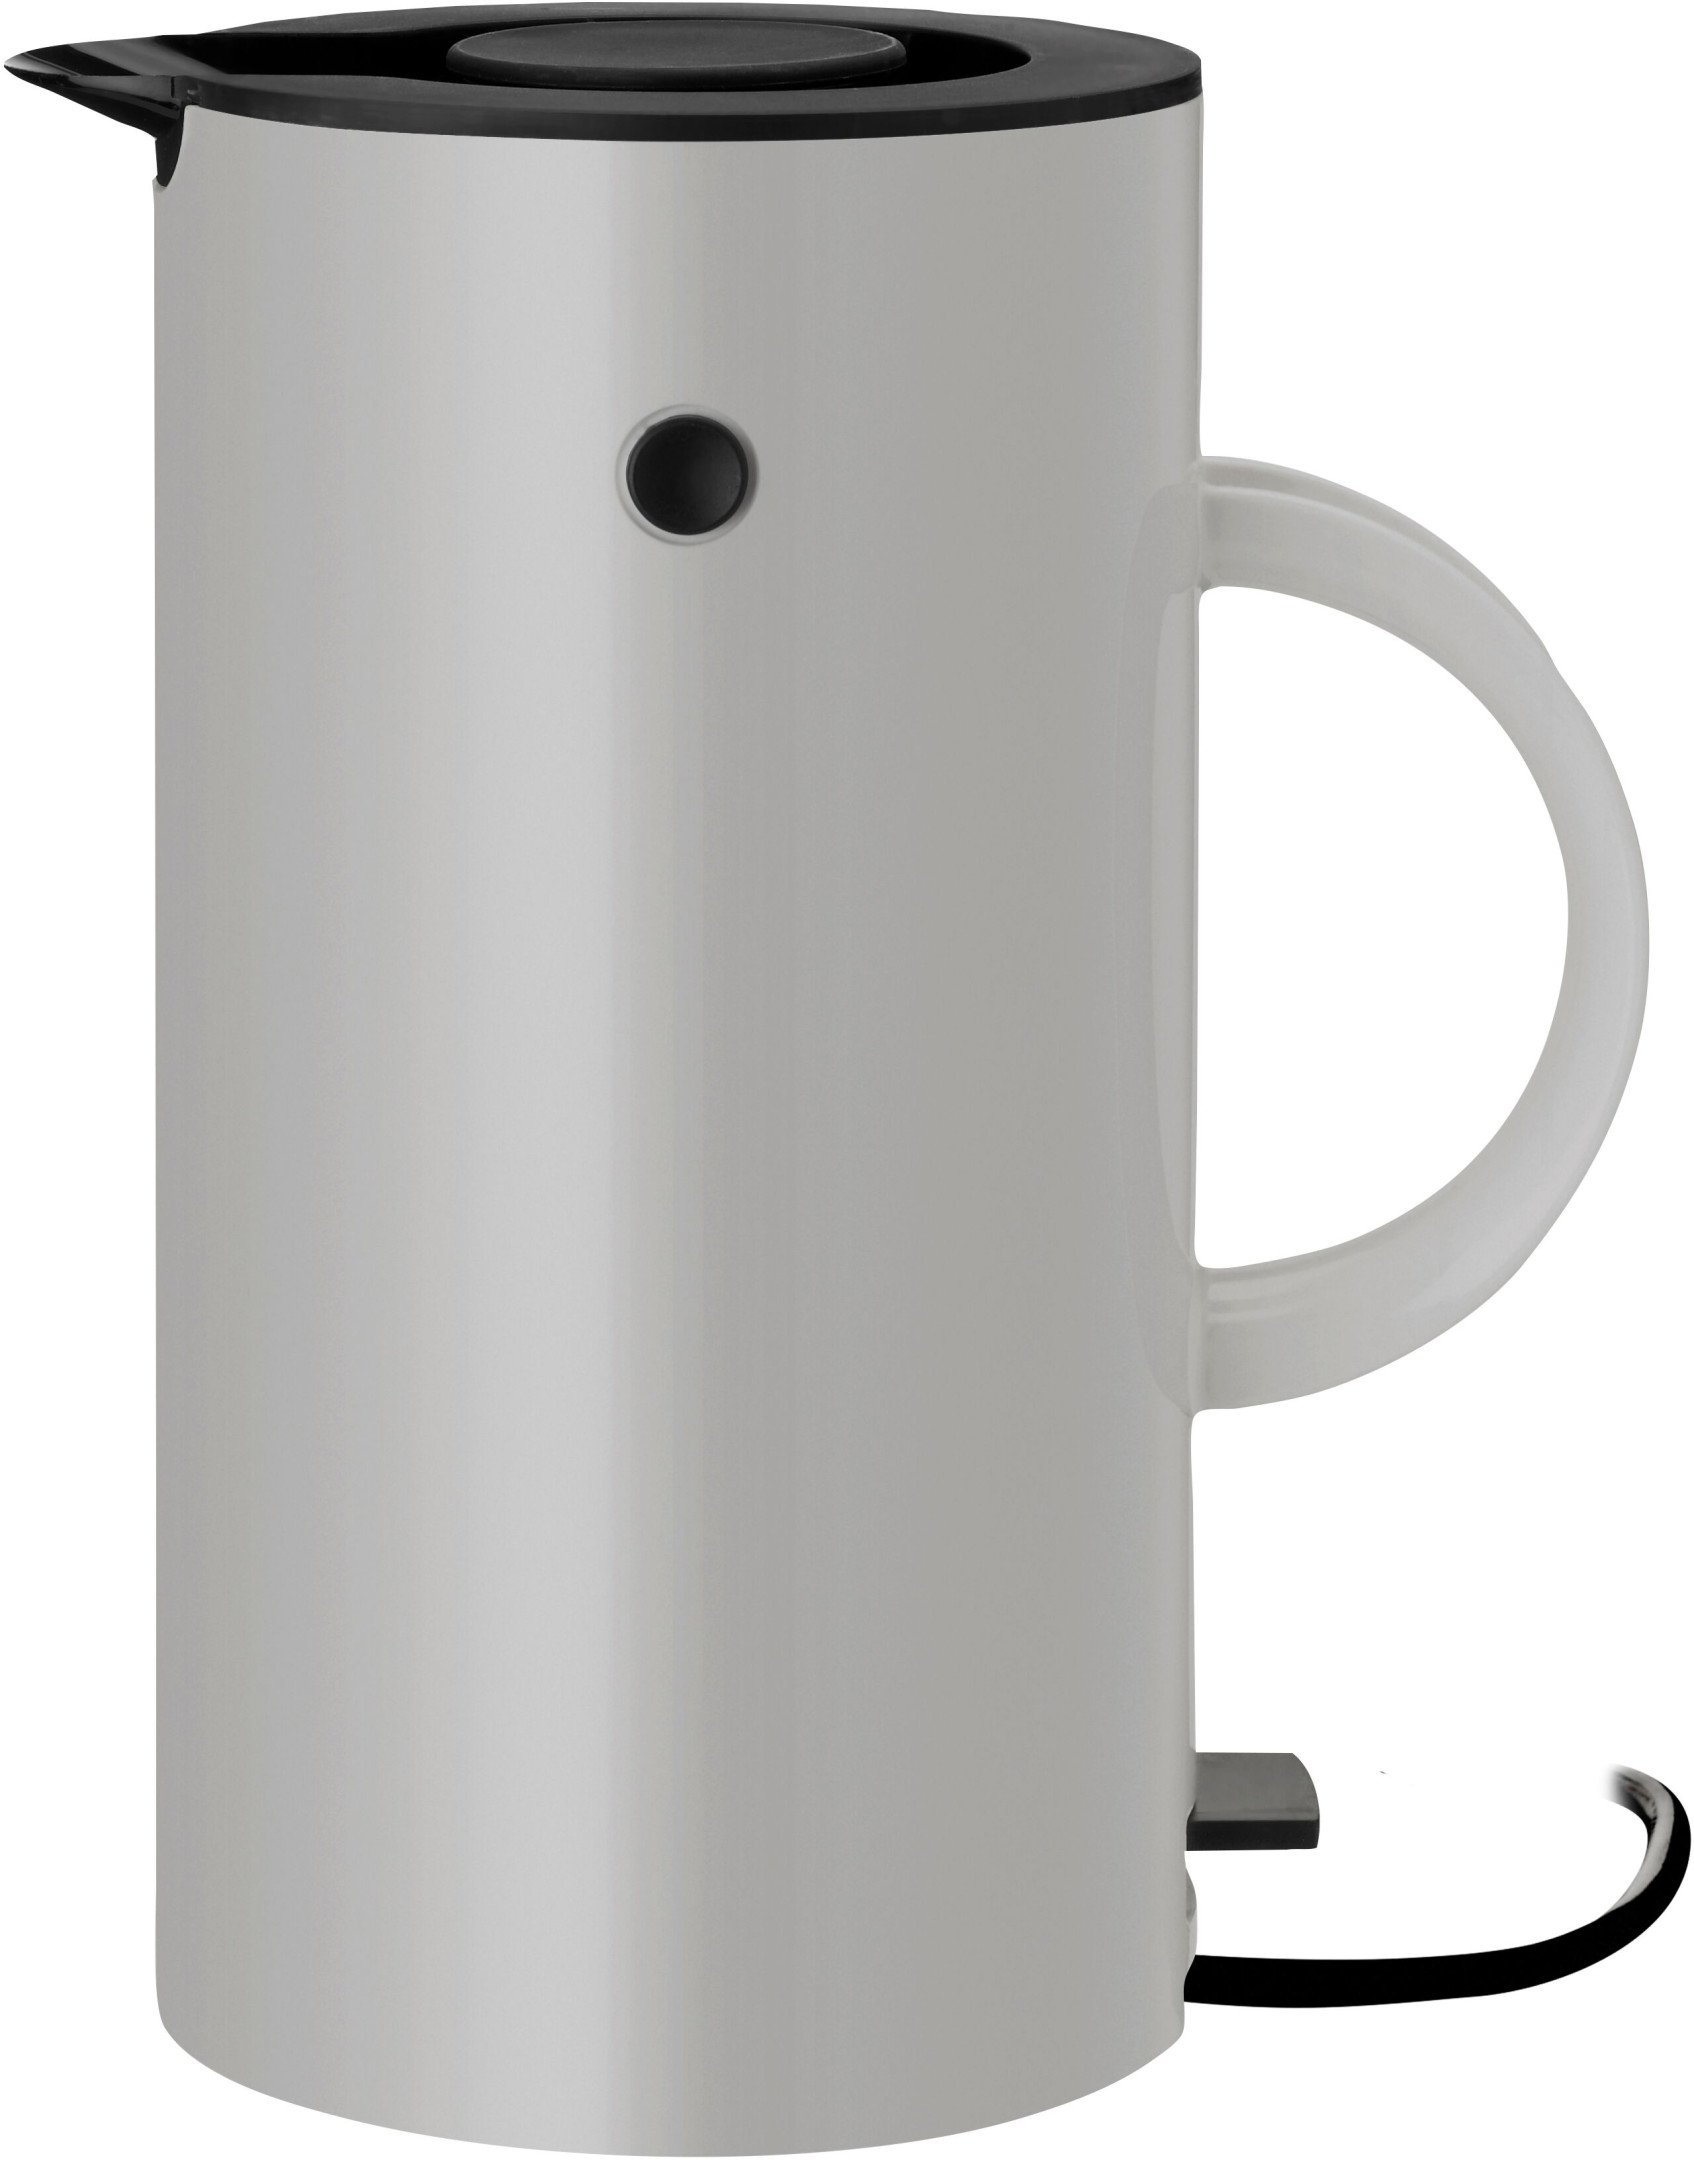 EM77 Electric kettle 1,5L Light Grey by E. Magnussen, Stelton